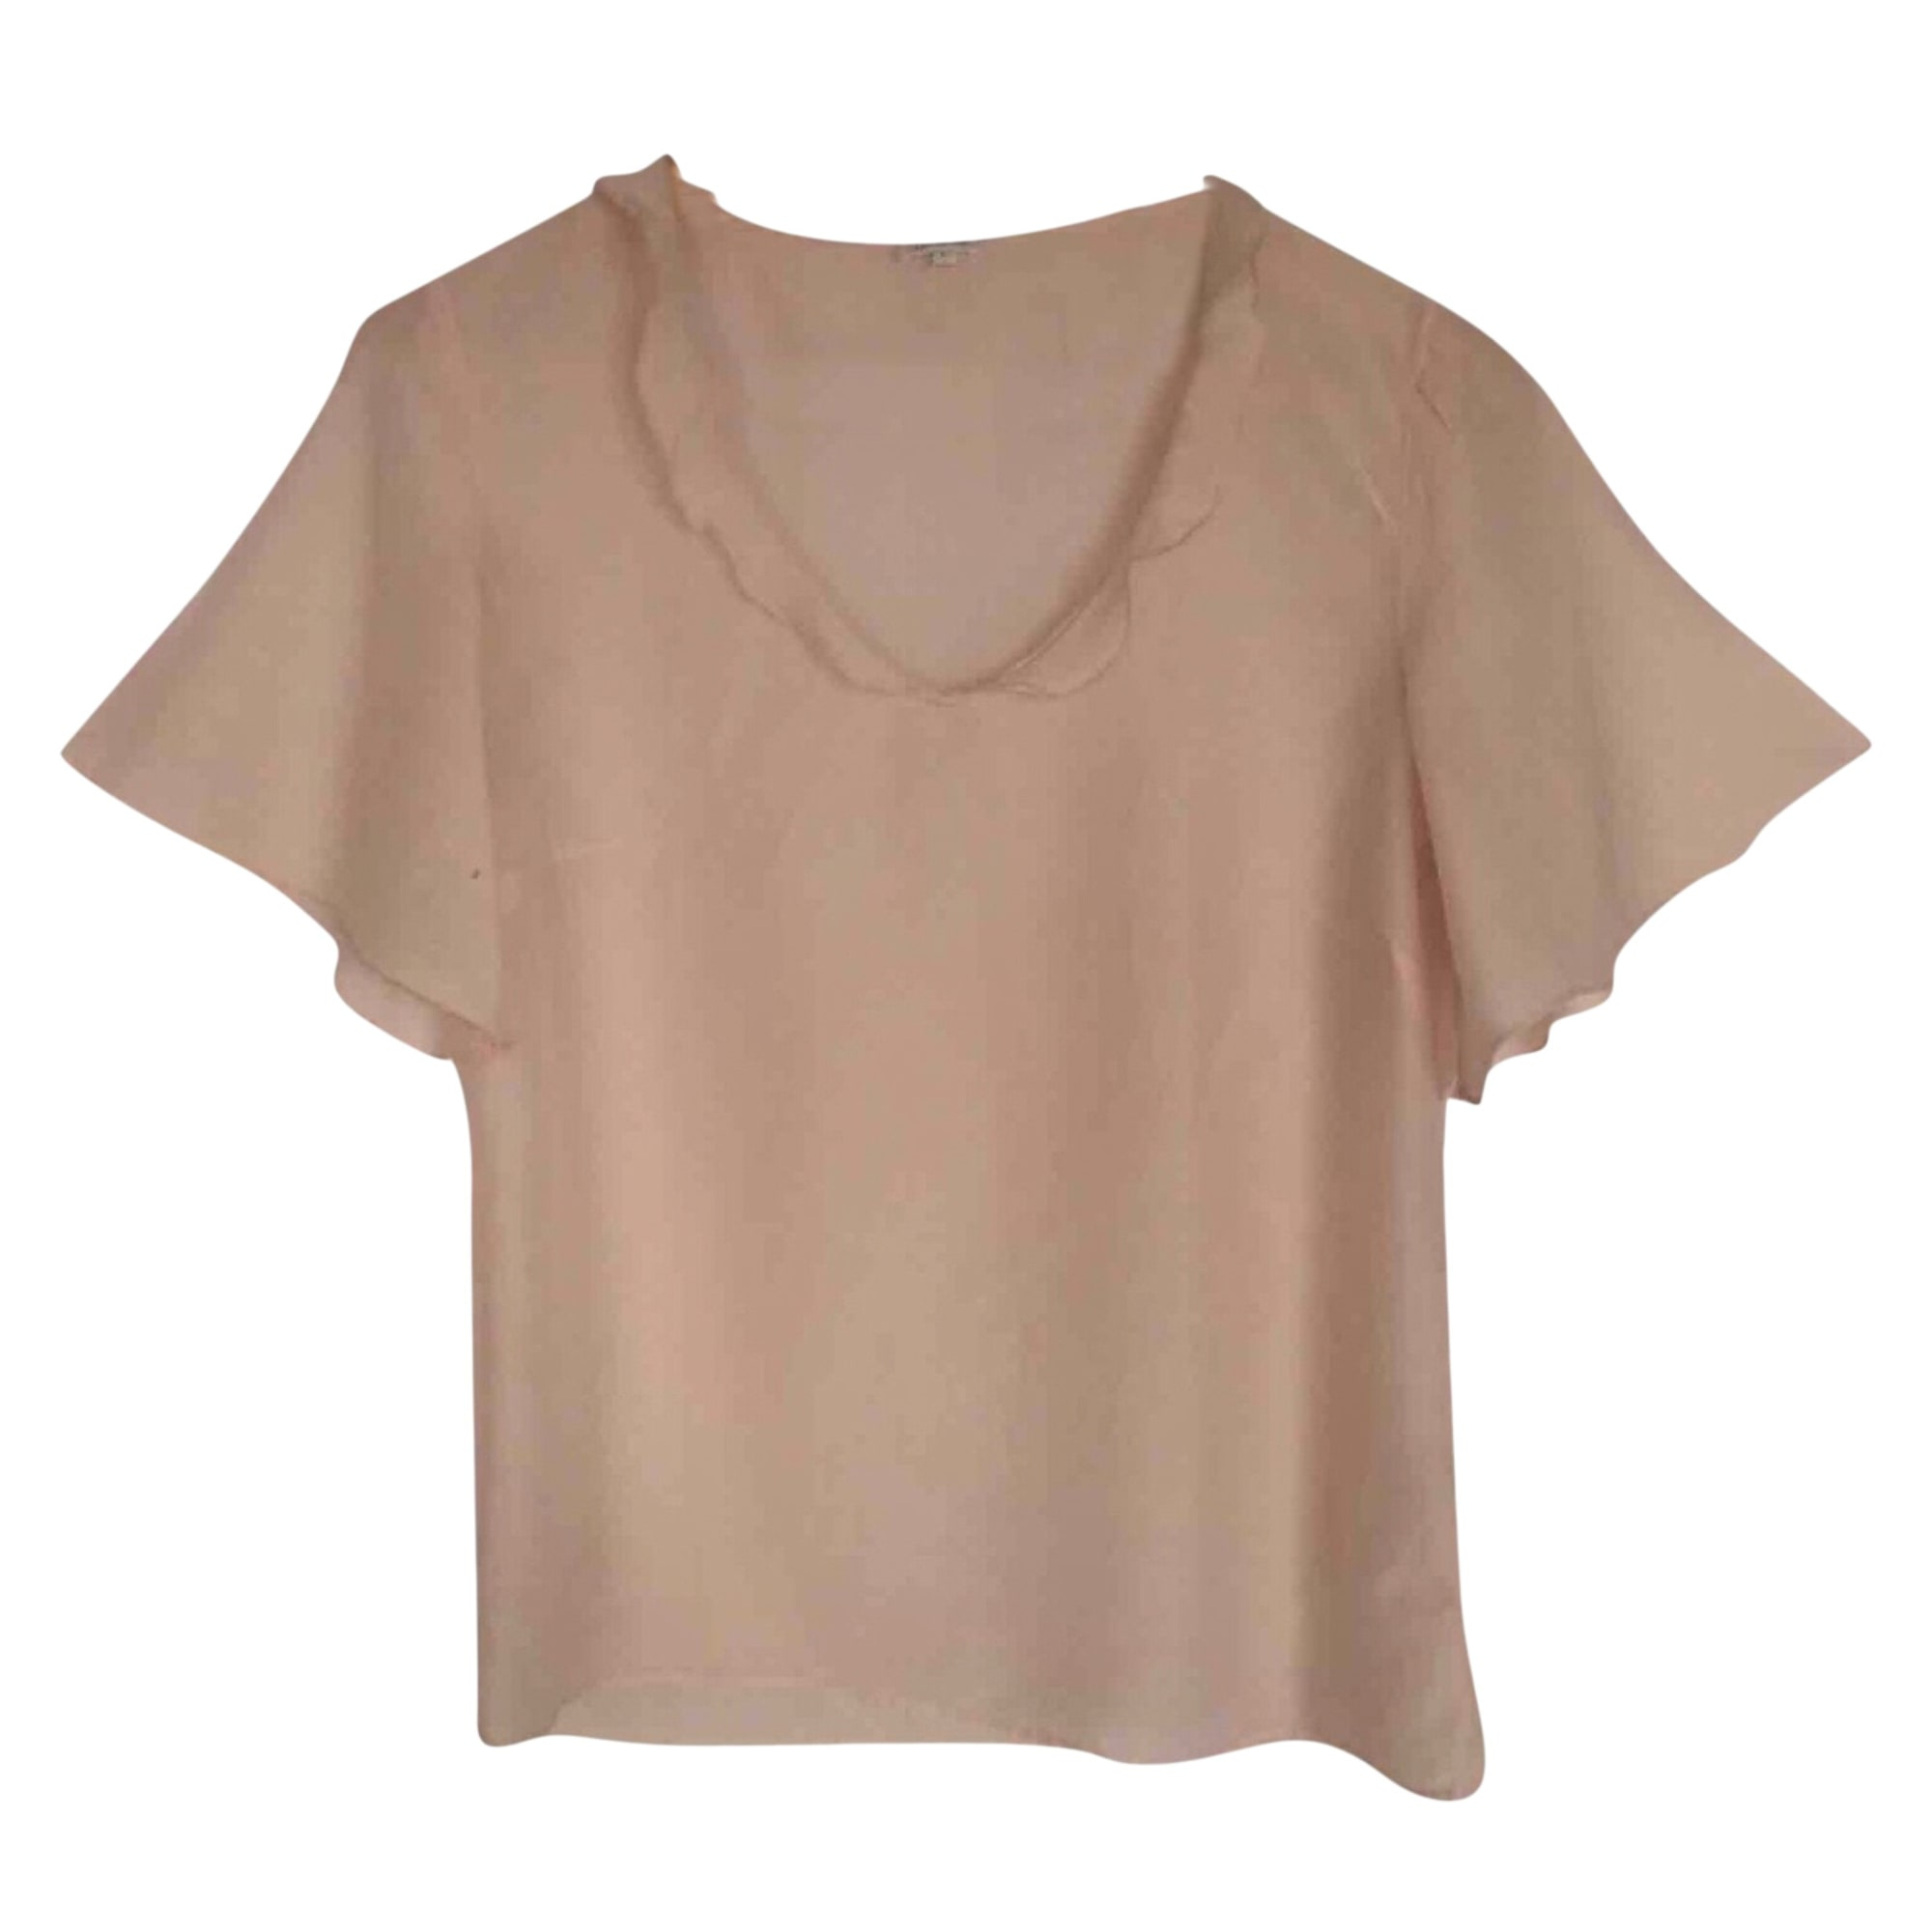 Top, tee-shirt BELLEROSE Rose, fuschia, vieux rose